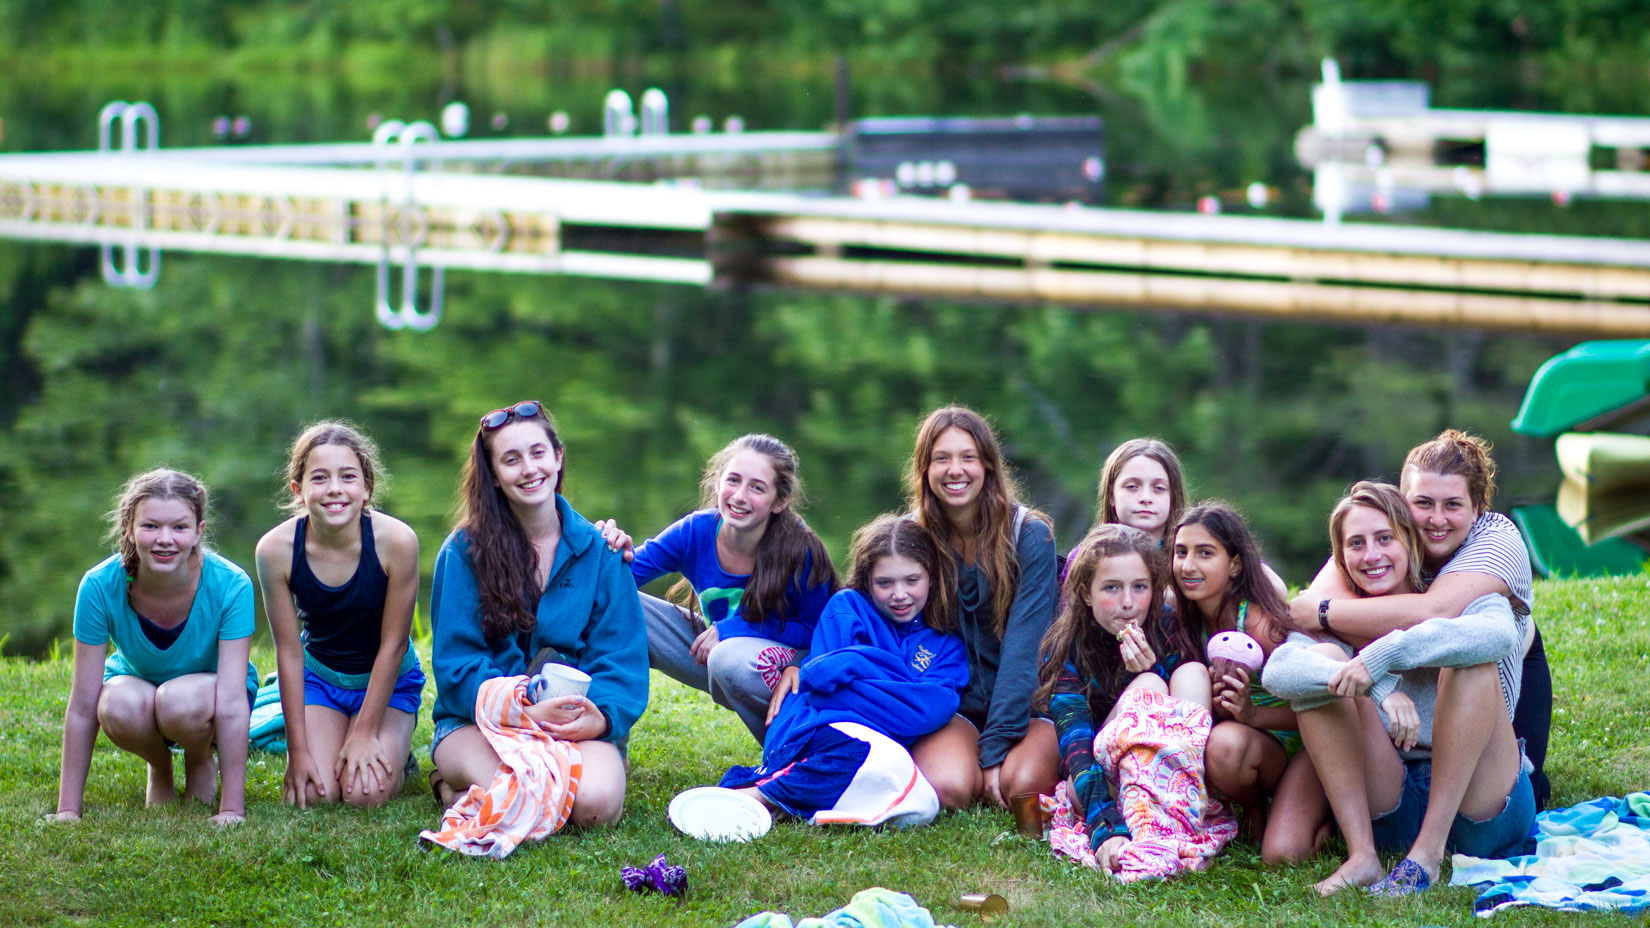 A group of campers sitting in front of the lake smiling.